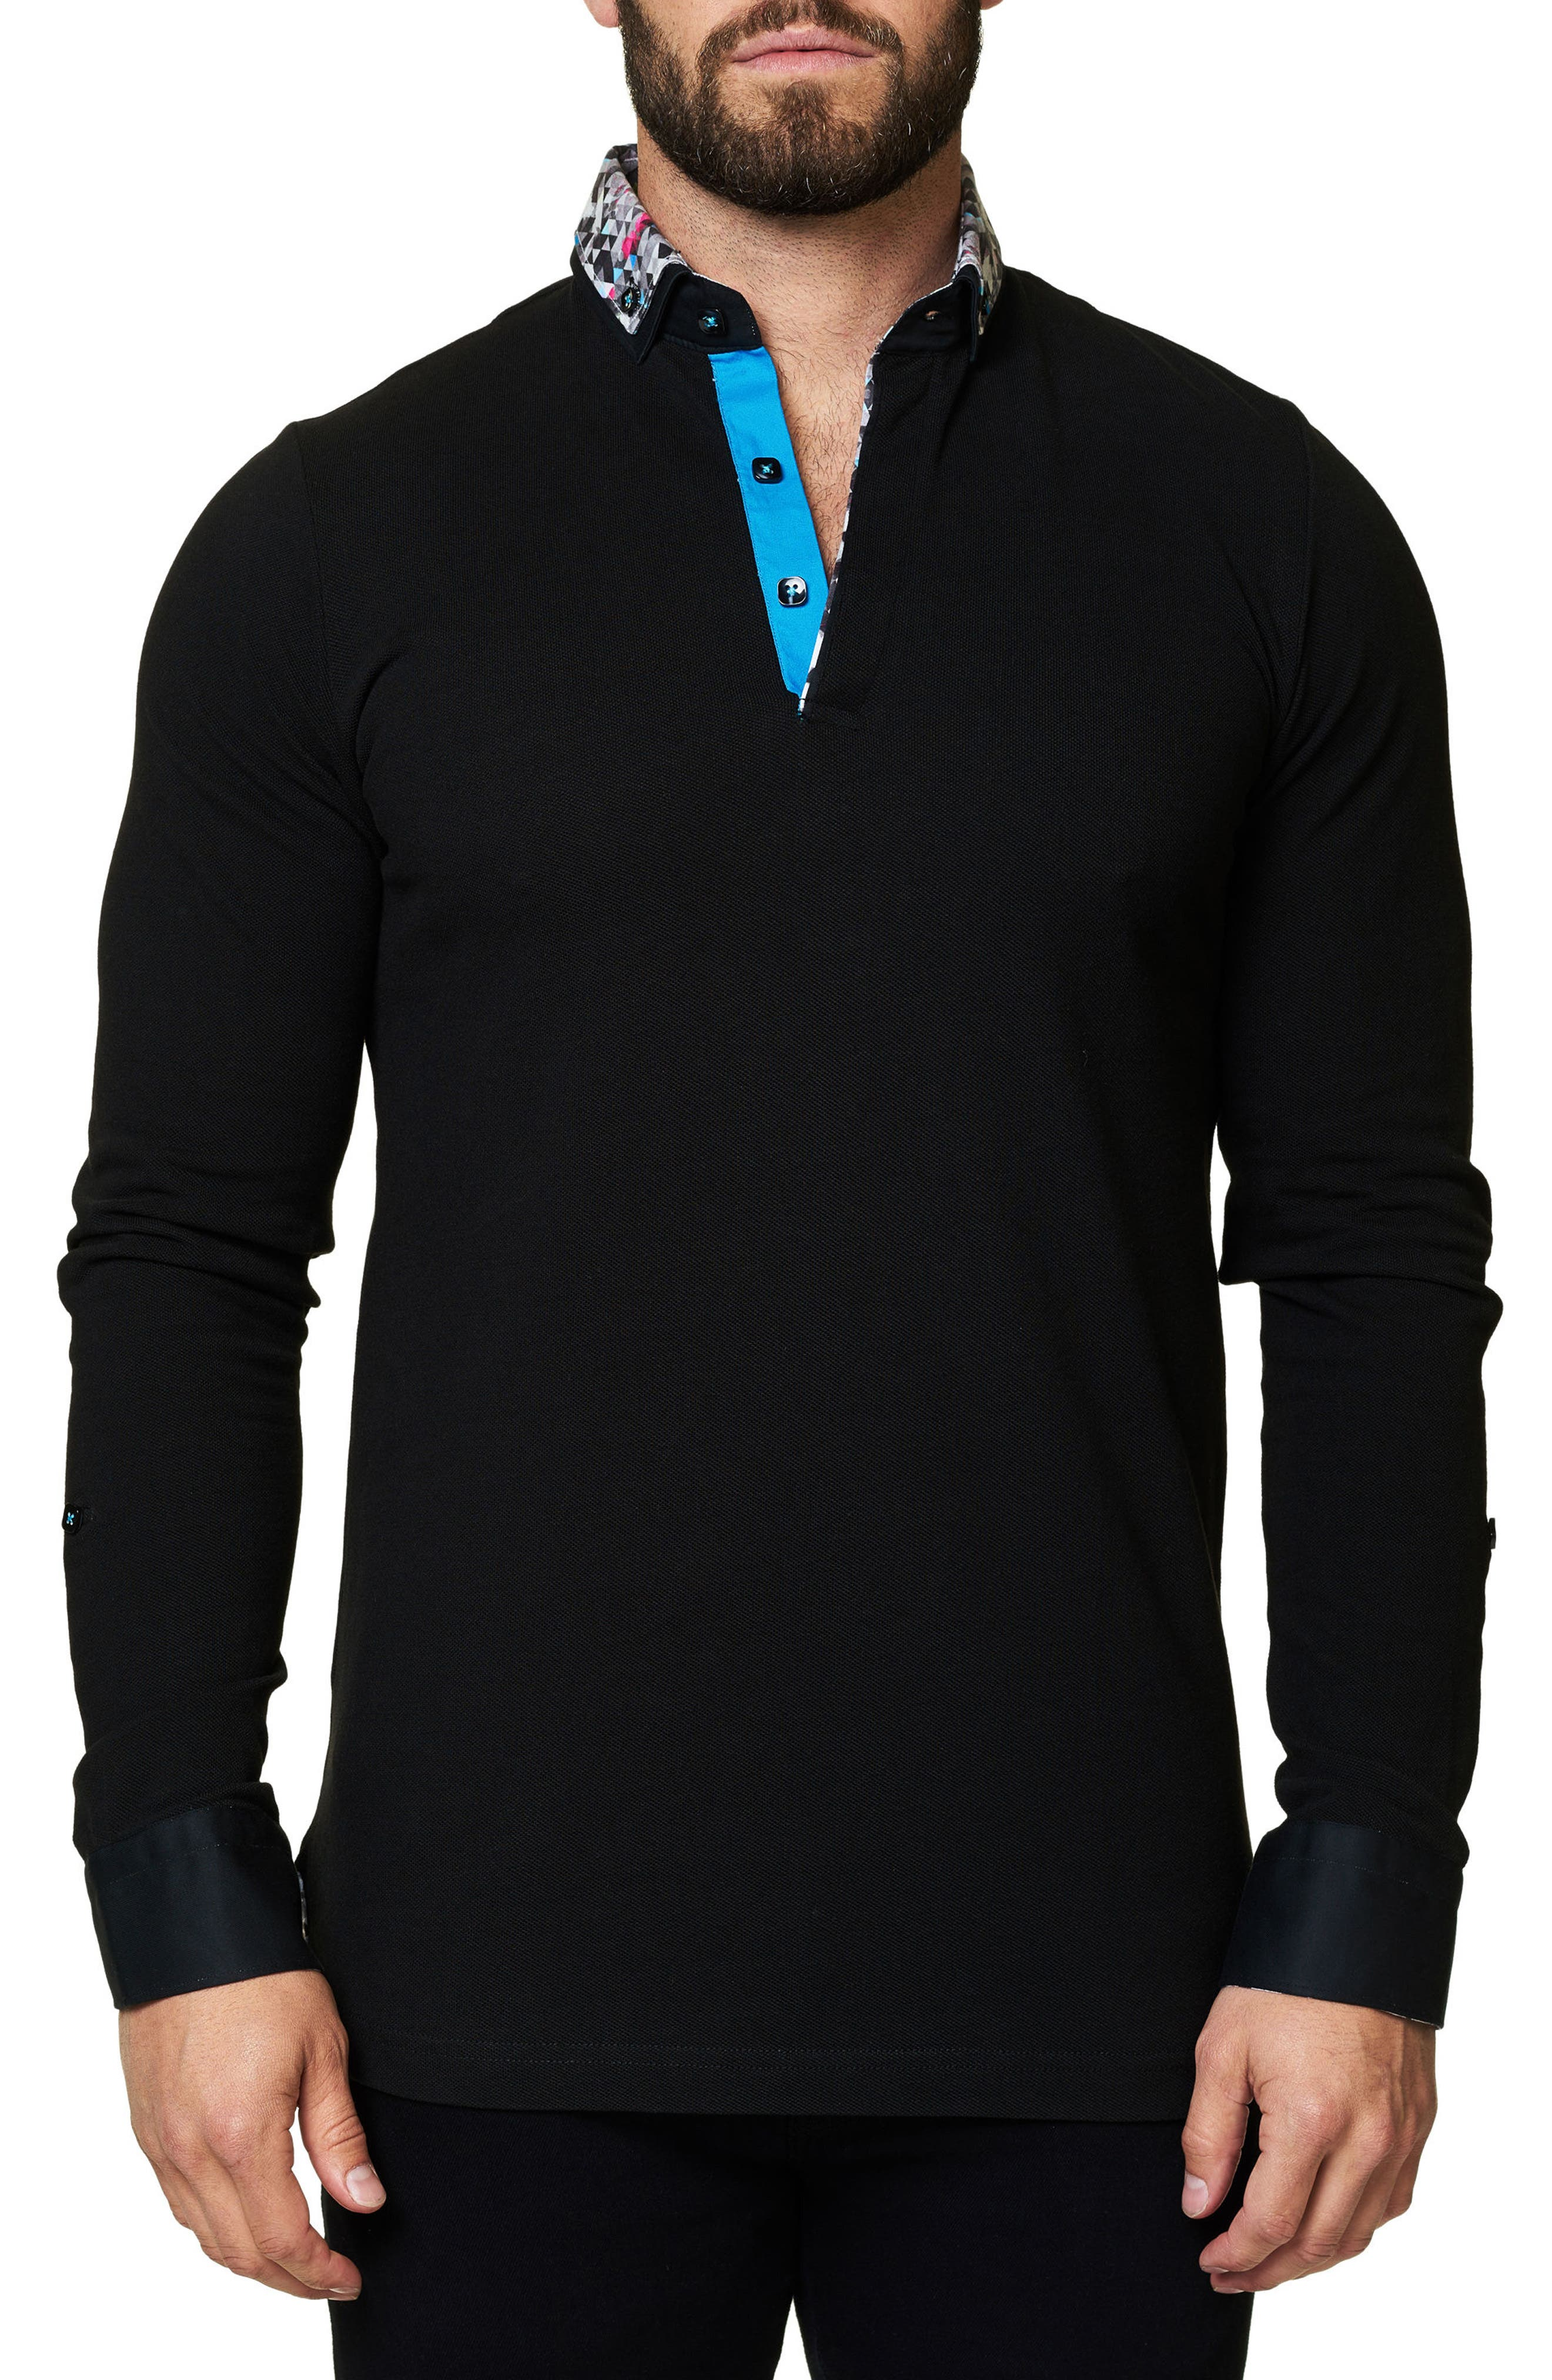 Alternate Image 1 Selected - Maceoo Slim Fit Woven Trim Long Sleeve Polo